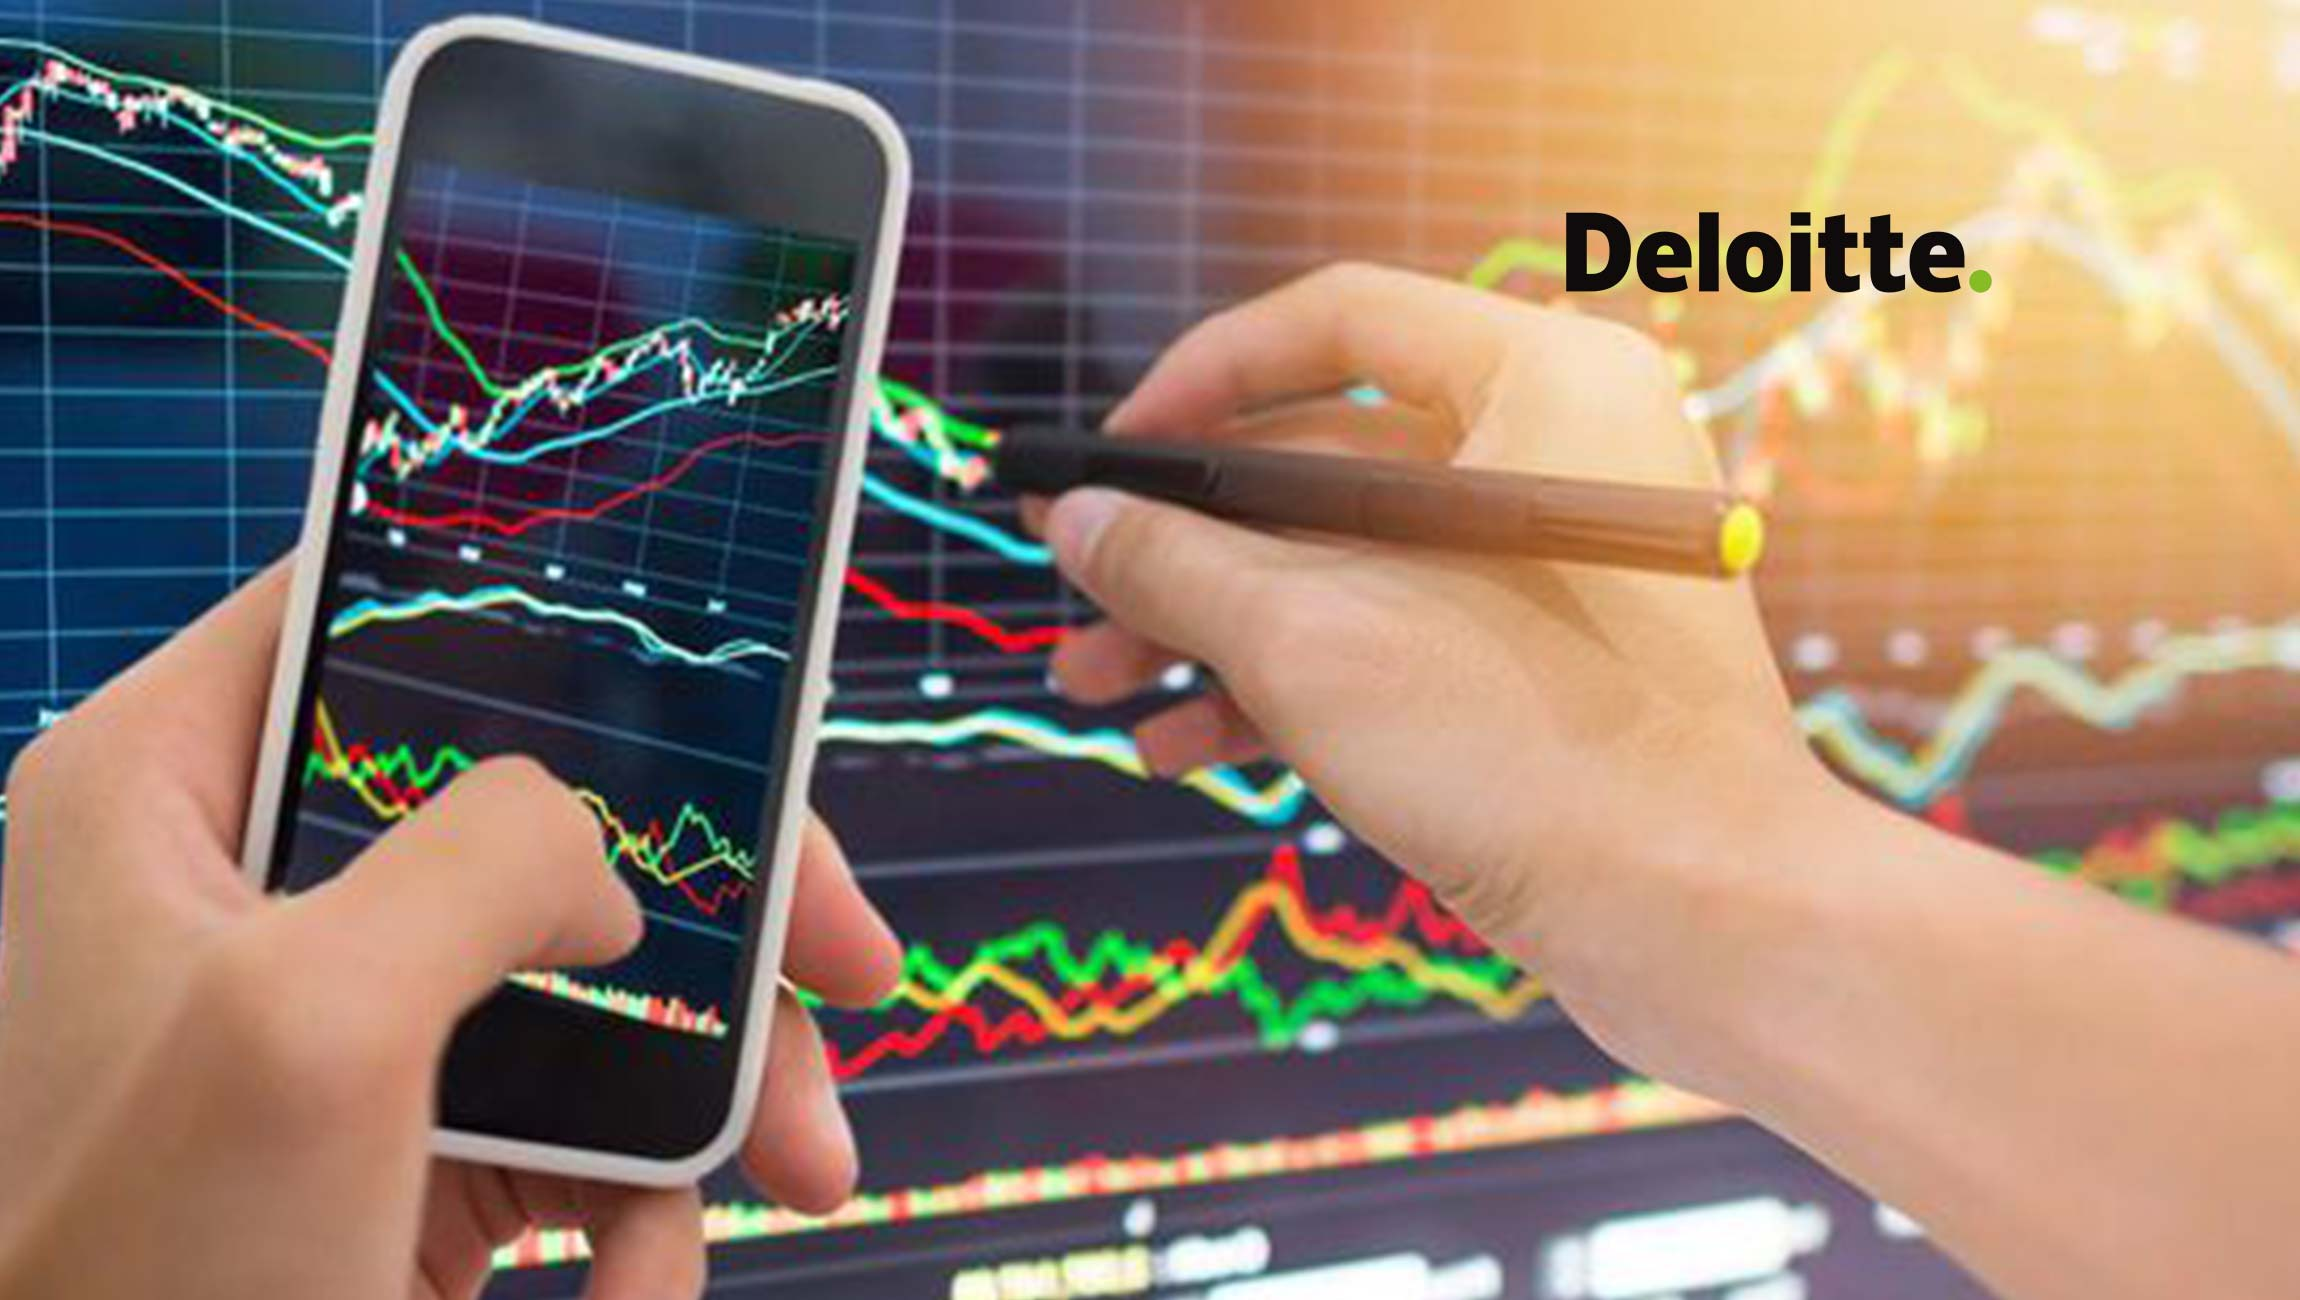 Deloitte named a leader in Worldwide Business Analytics Consulting by IDC MarketScape